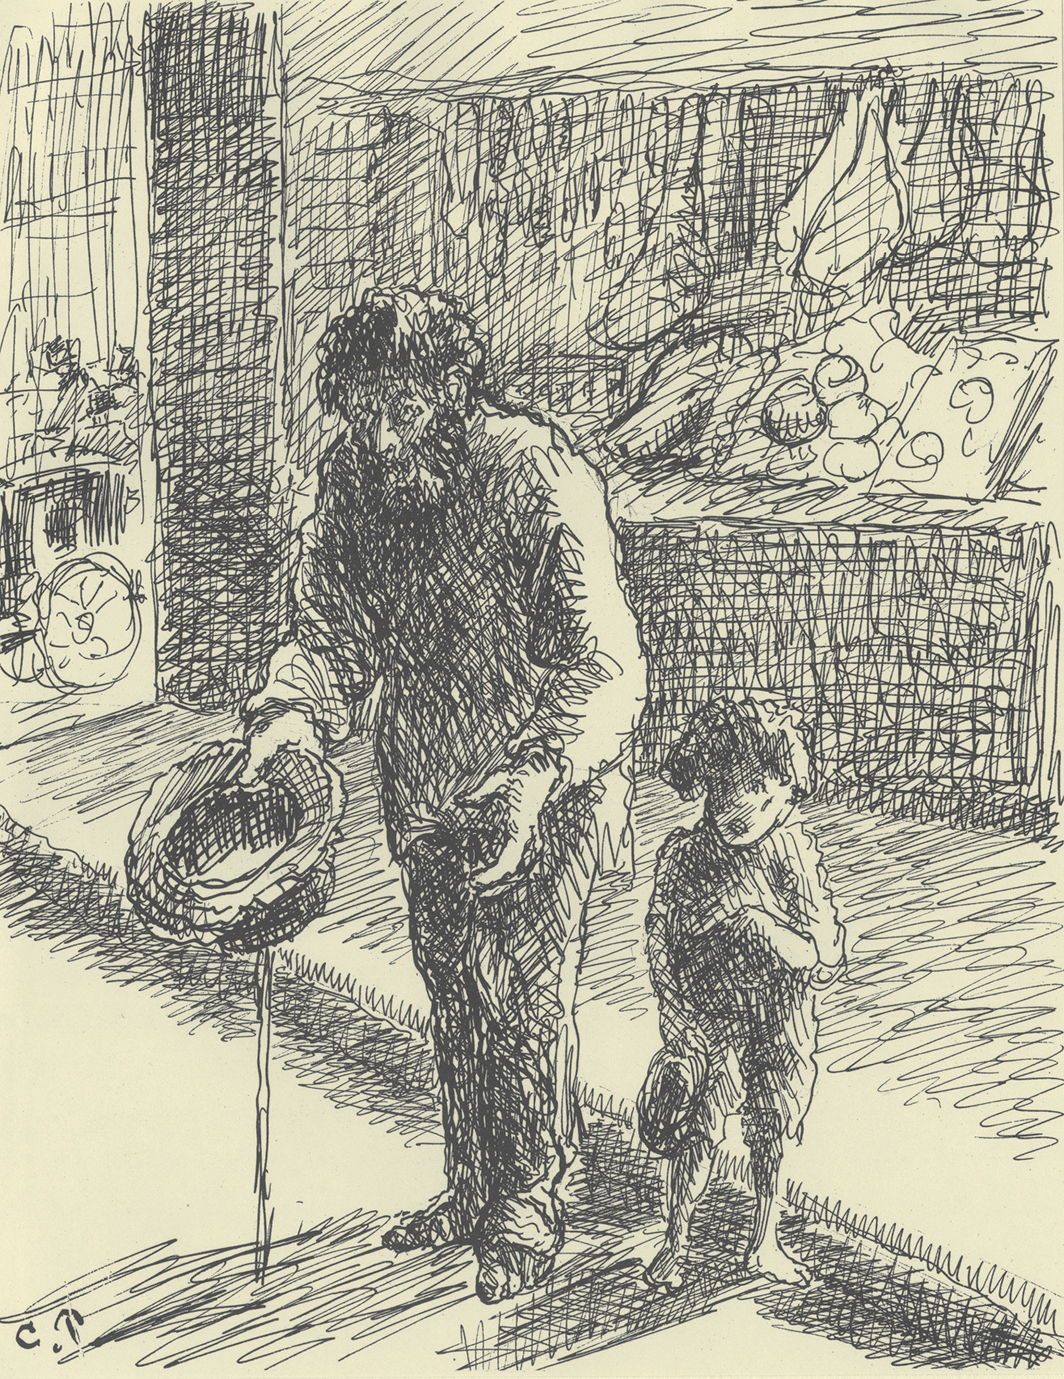 """Camille Pissarro, Le mendiant (The Beggar), 1889–90, ink and pencil on paper, 12 1⁄4 × 9 1⁄2"""". From Turpitudes sociales (Social Disgraces), 1889–90."""